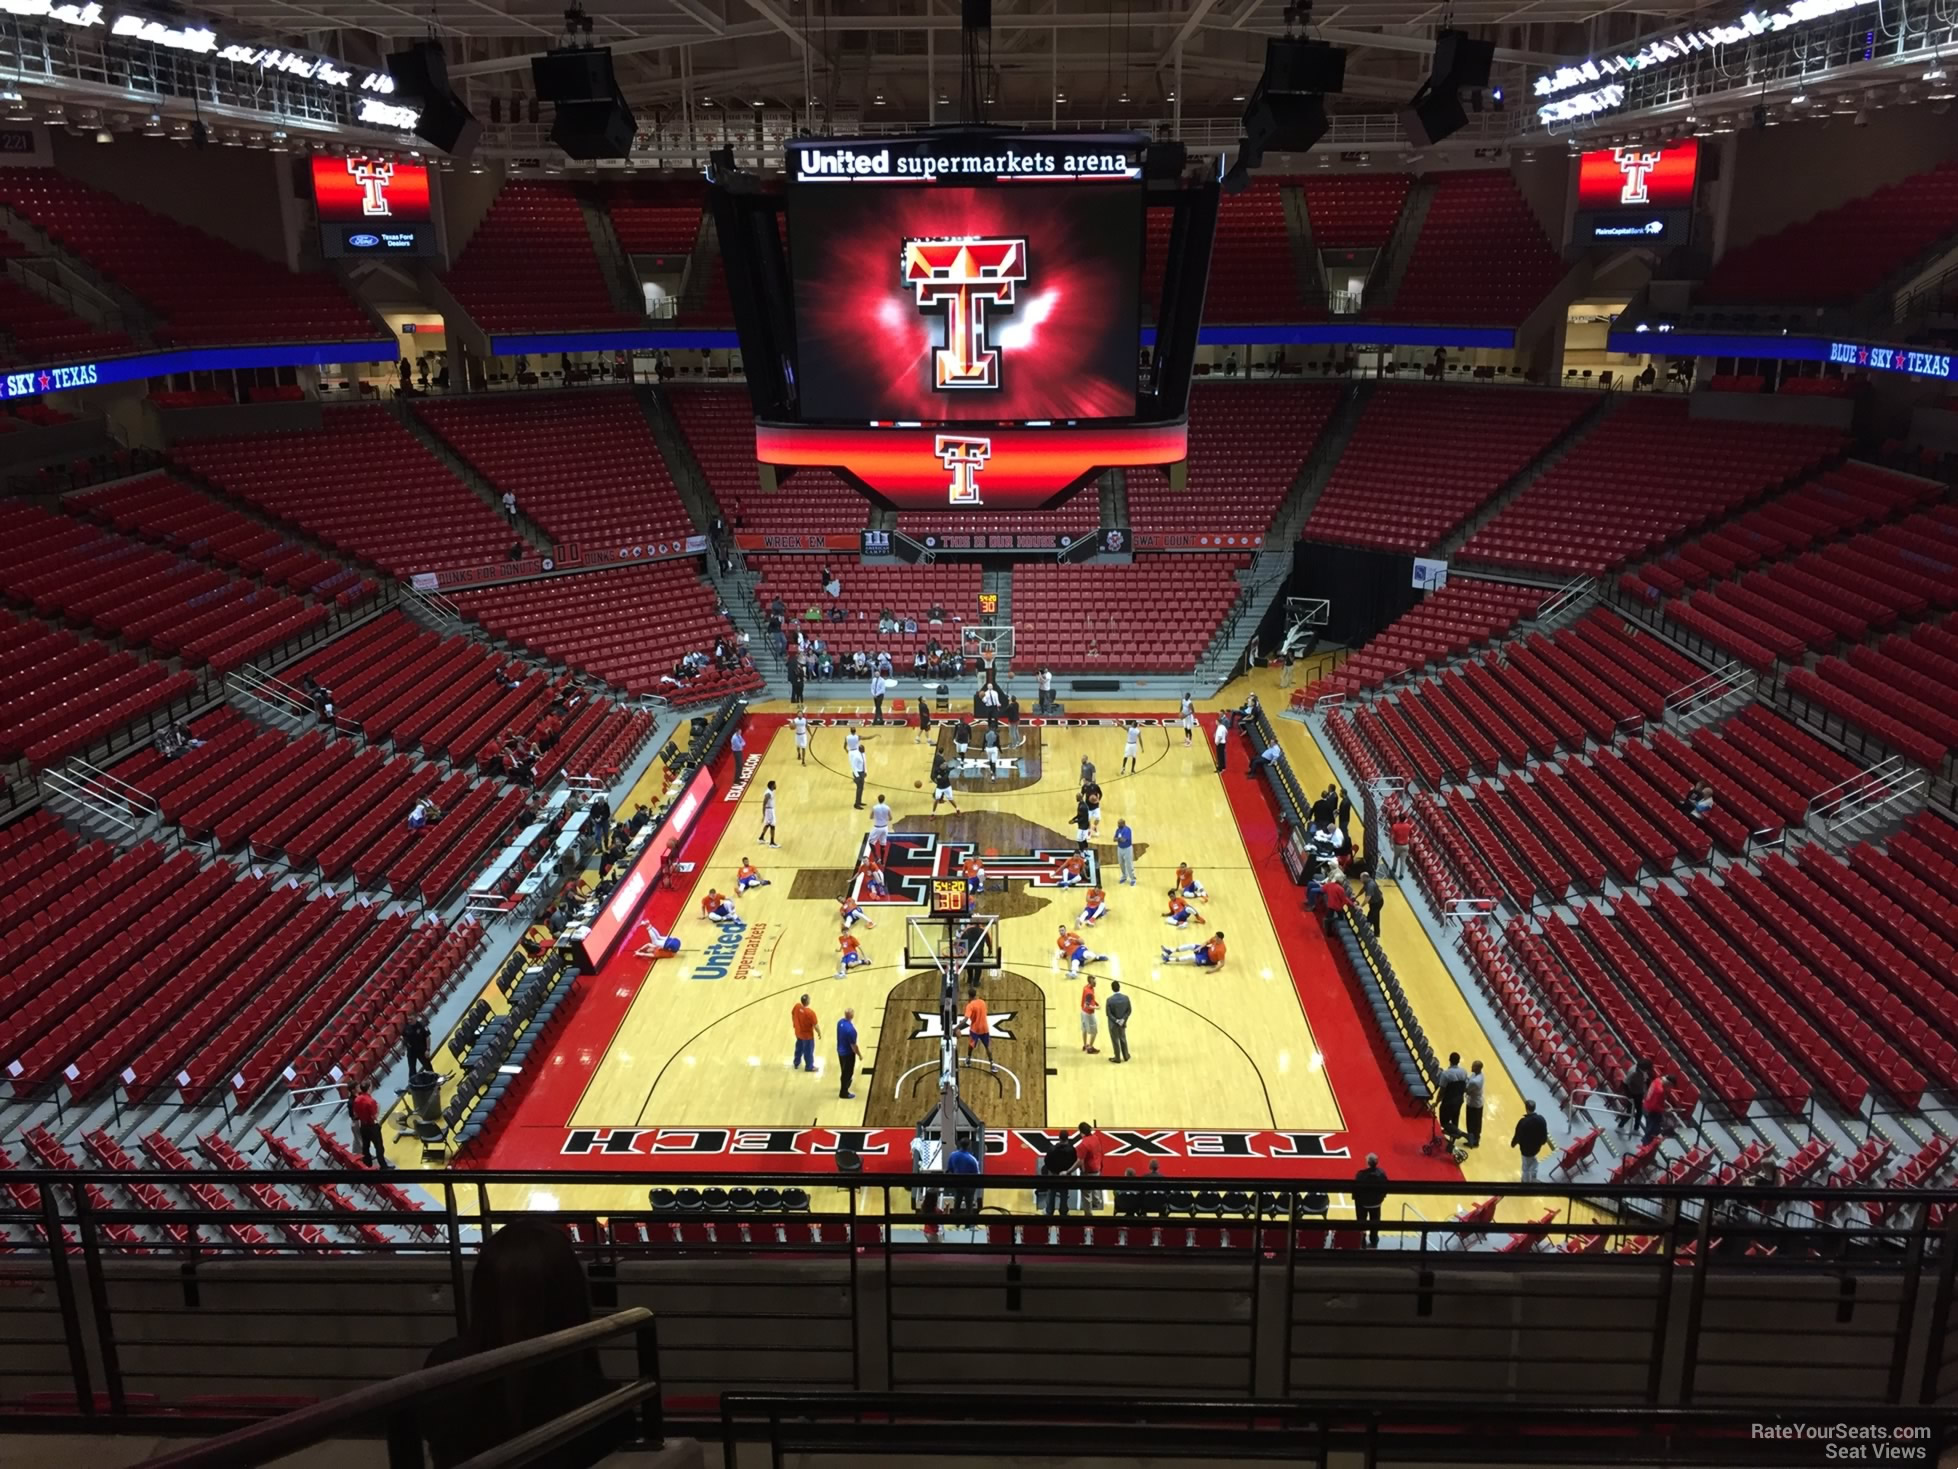 United Supermarkets Arena Section 209 - RateYourSeats.com